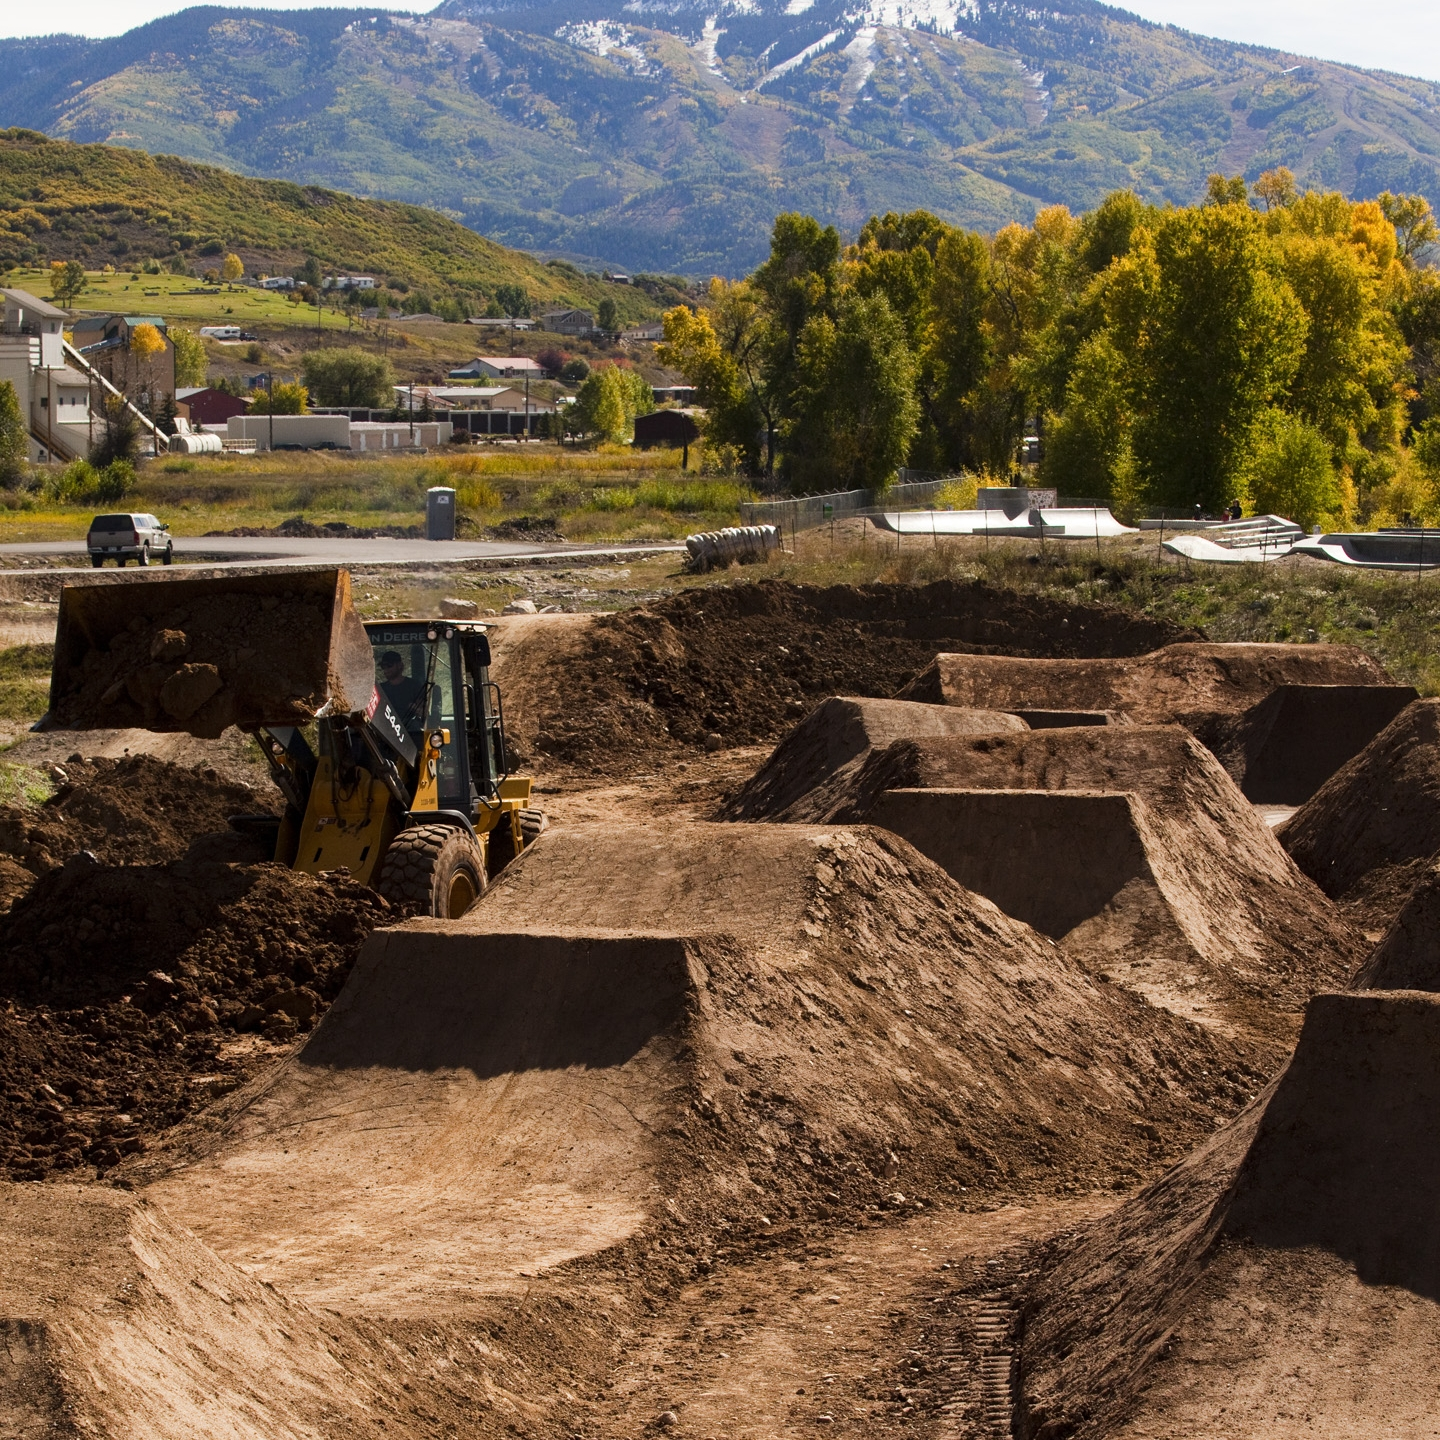 IMBA hopes its Dig In program will allow projects like this bike park in Steamboat Springs, Colorado to happen nationwide.